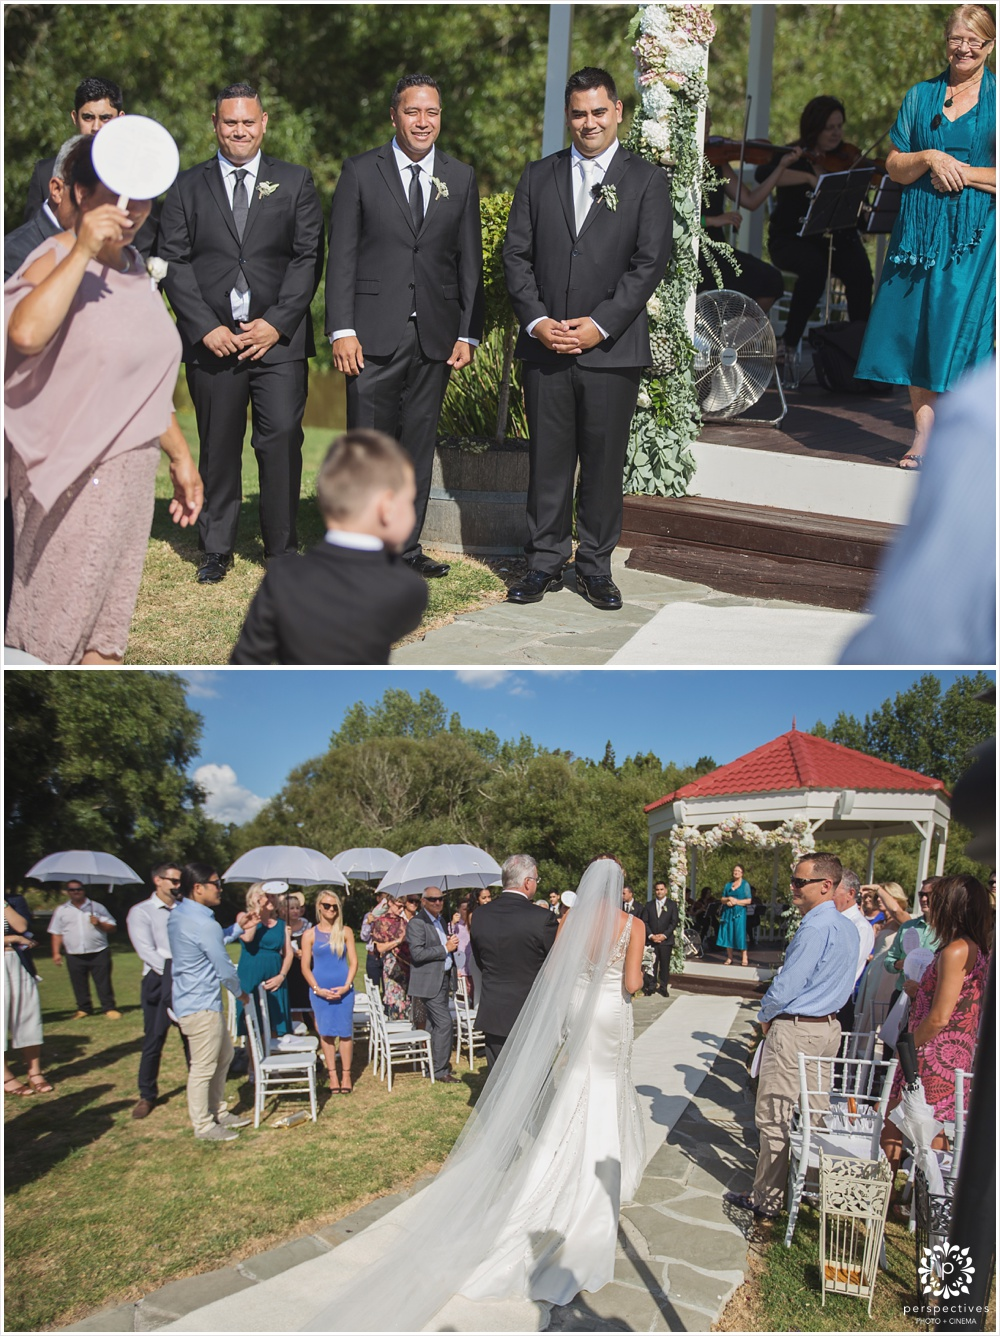 Gracehill ceremony photos